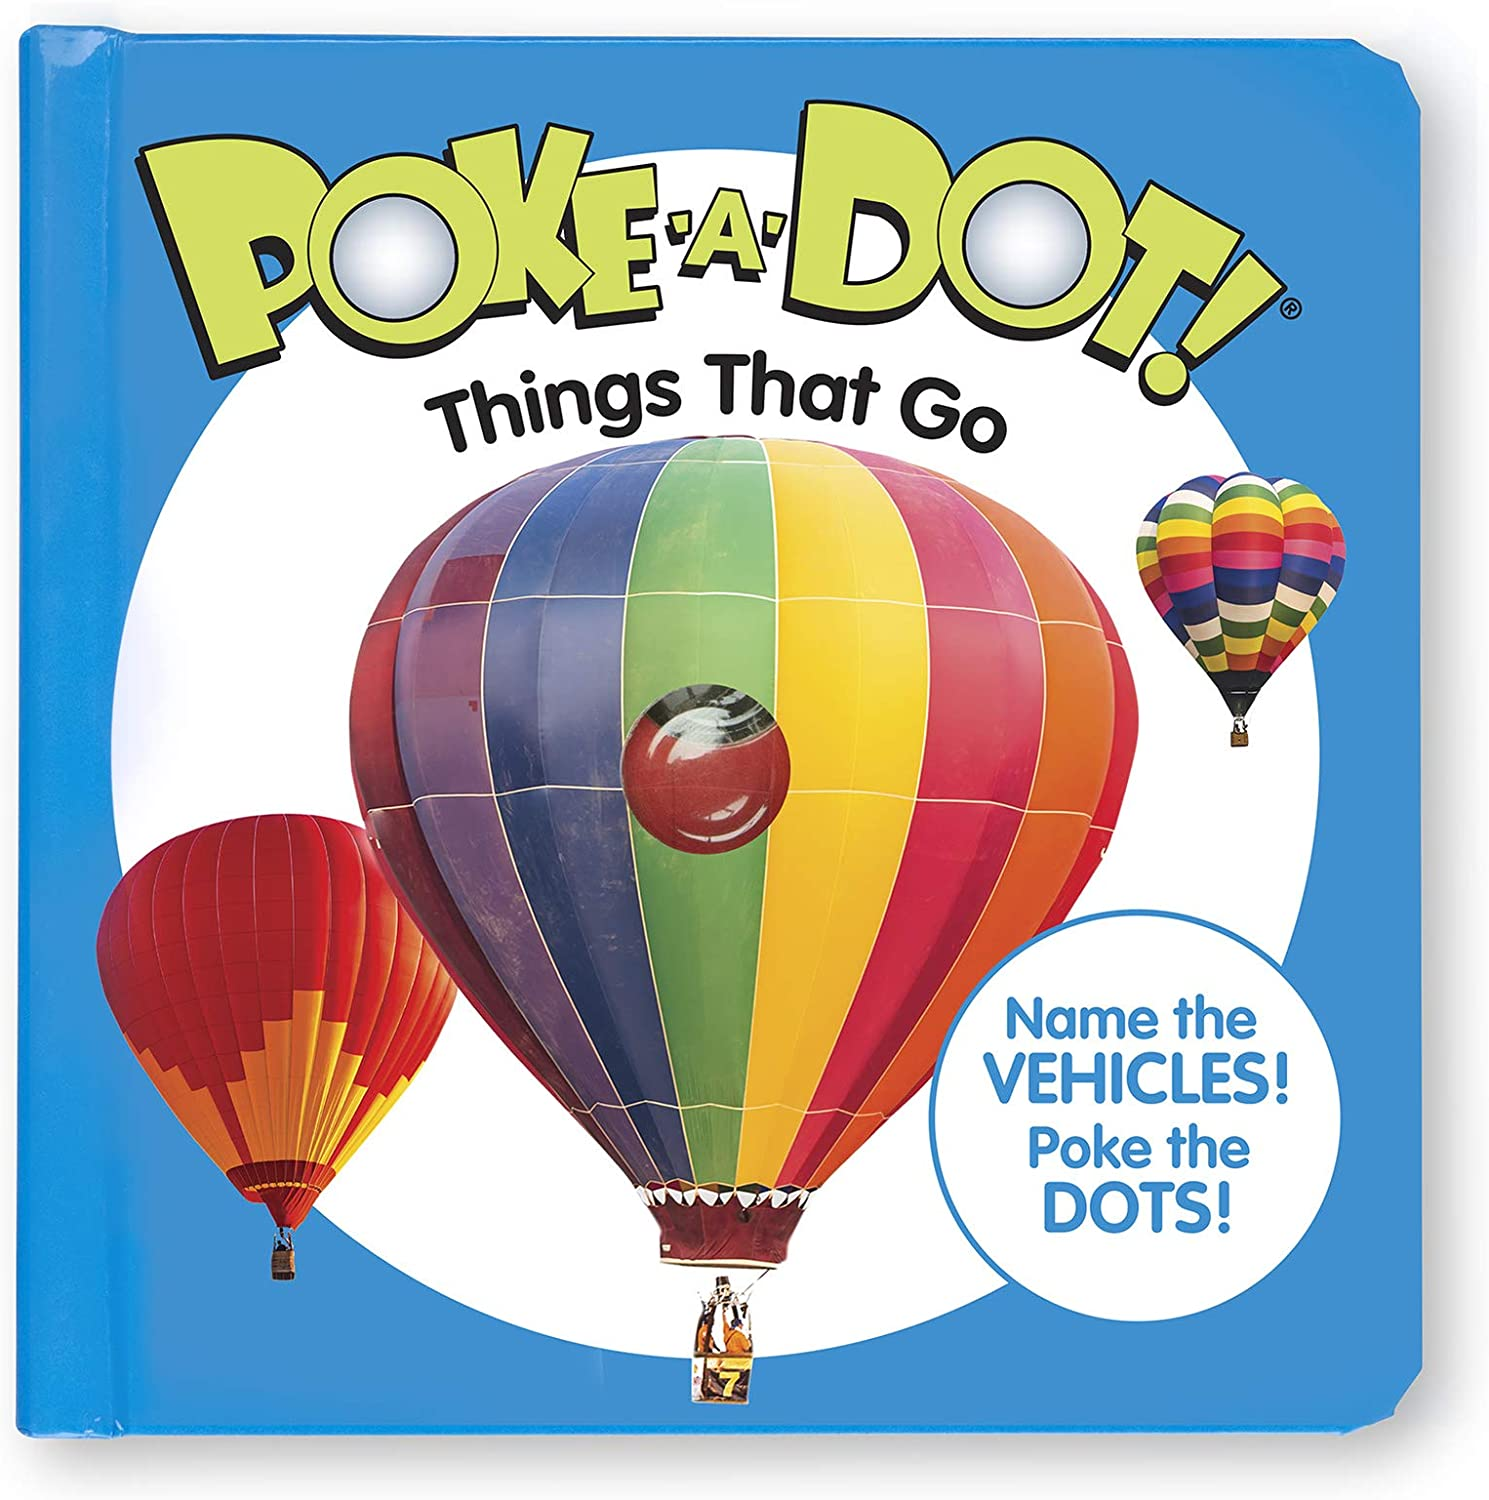 Gift for Boy or Girl 3+ Melissa /& Doug 41354 Poke-a-Dot Things That Go Activity Books